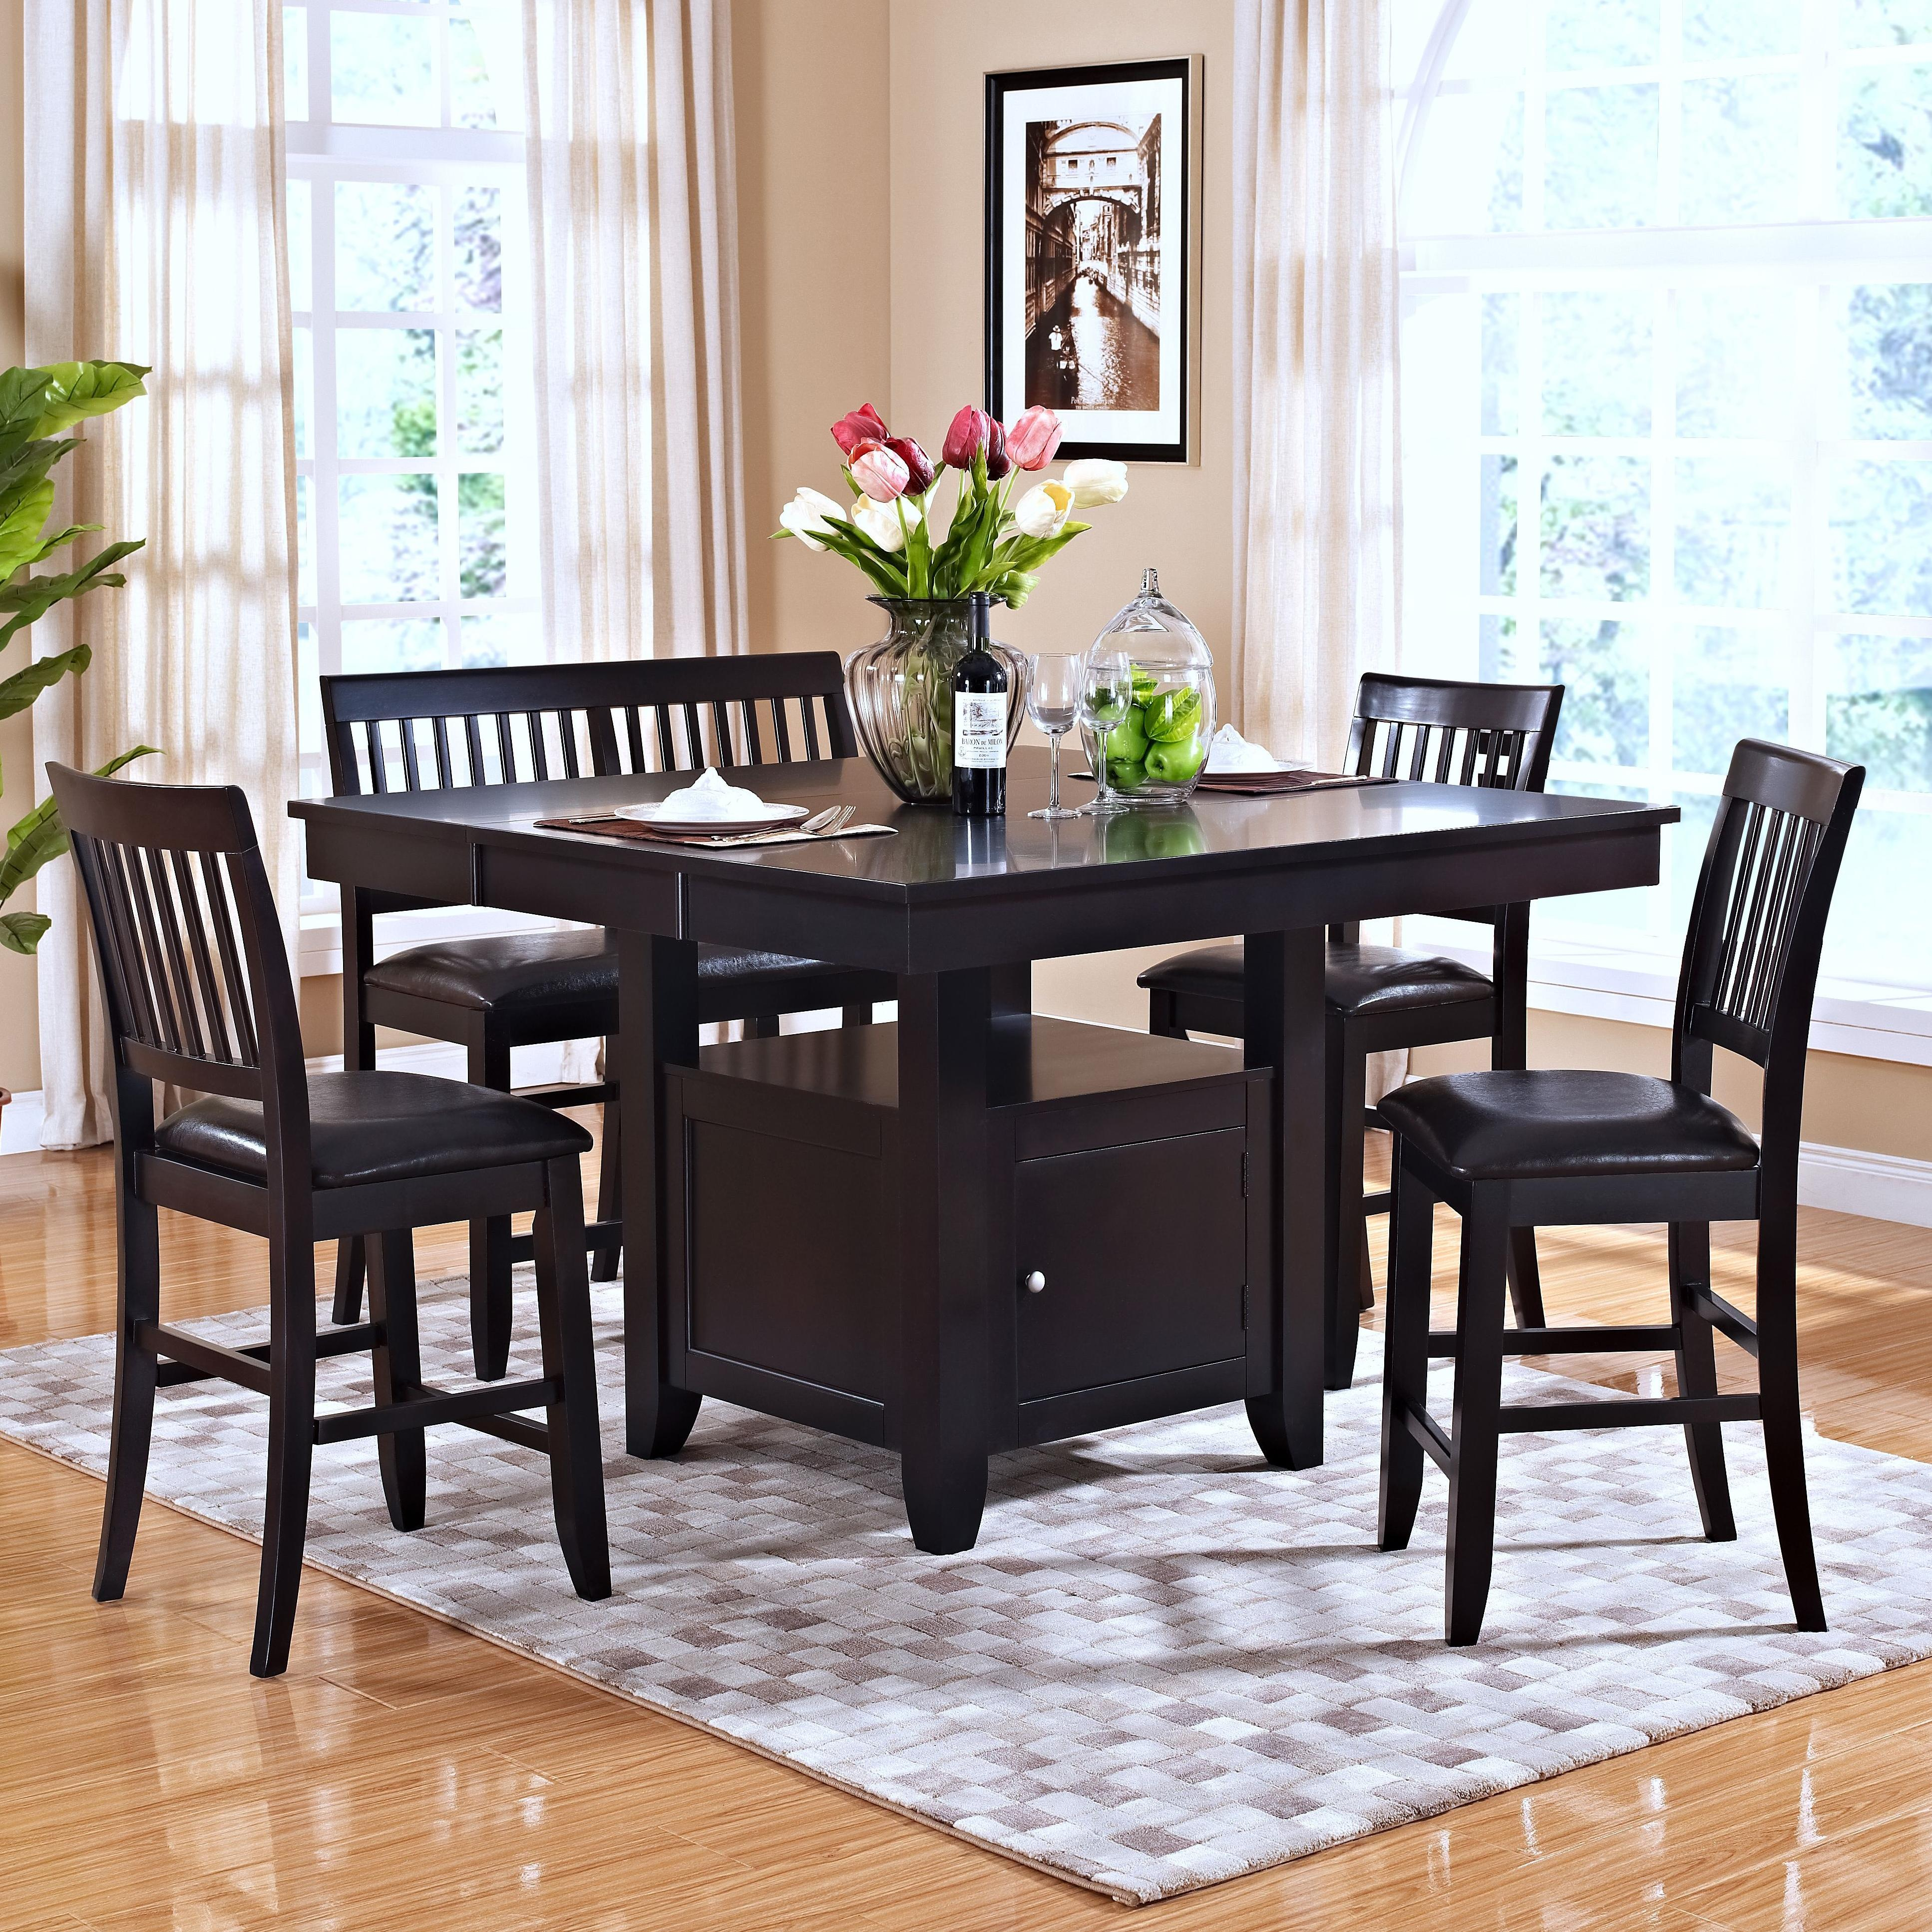 New Classic Kaylee 5 Piece Table Set - Item Number: 45-102-10+B+3x20+25